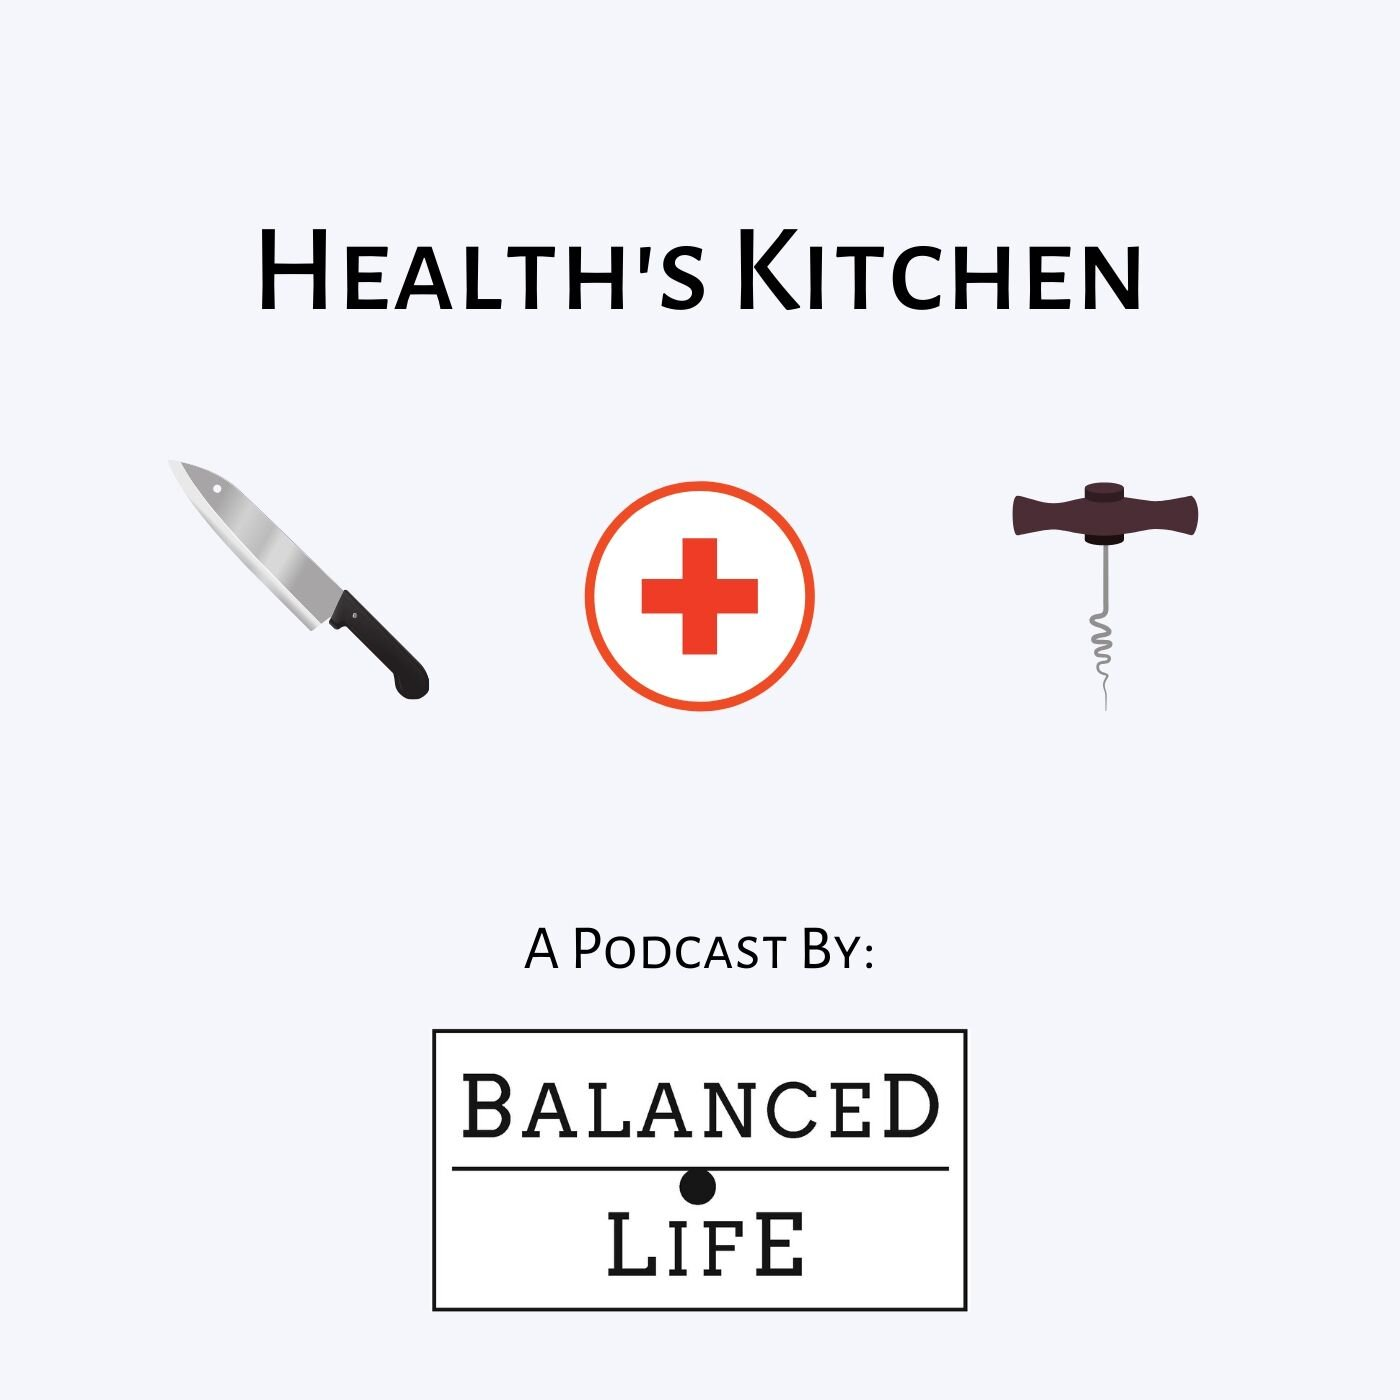 Episode 12: Injury Treatment and Prevention in Food Service.